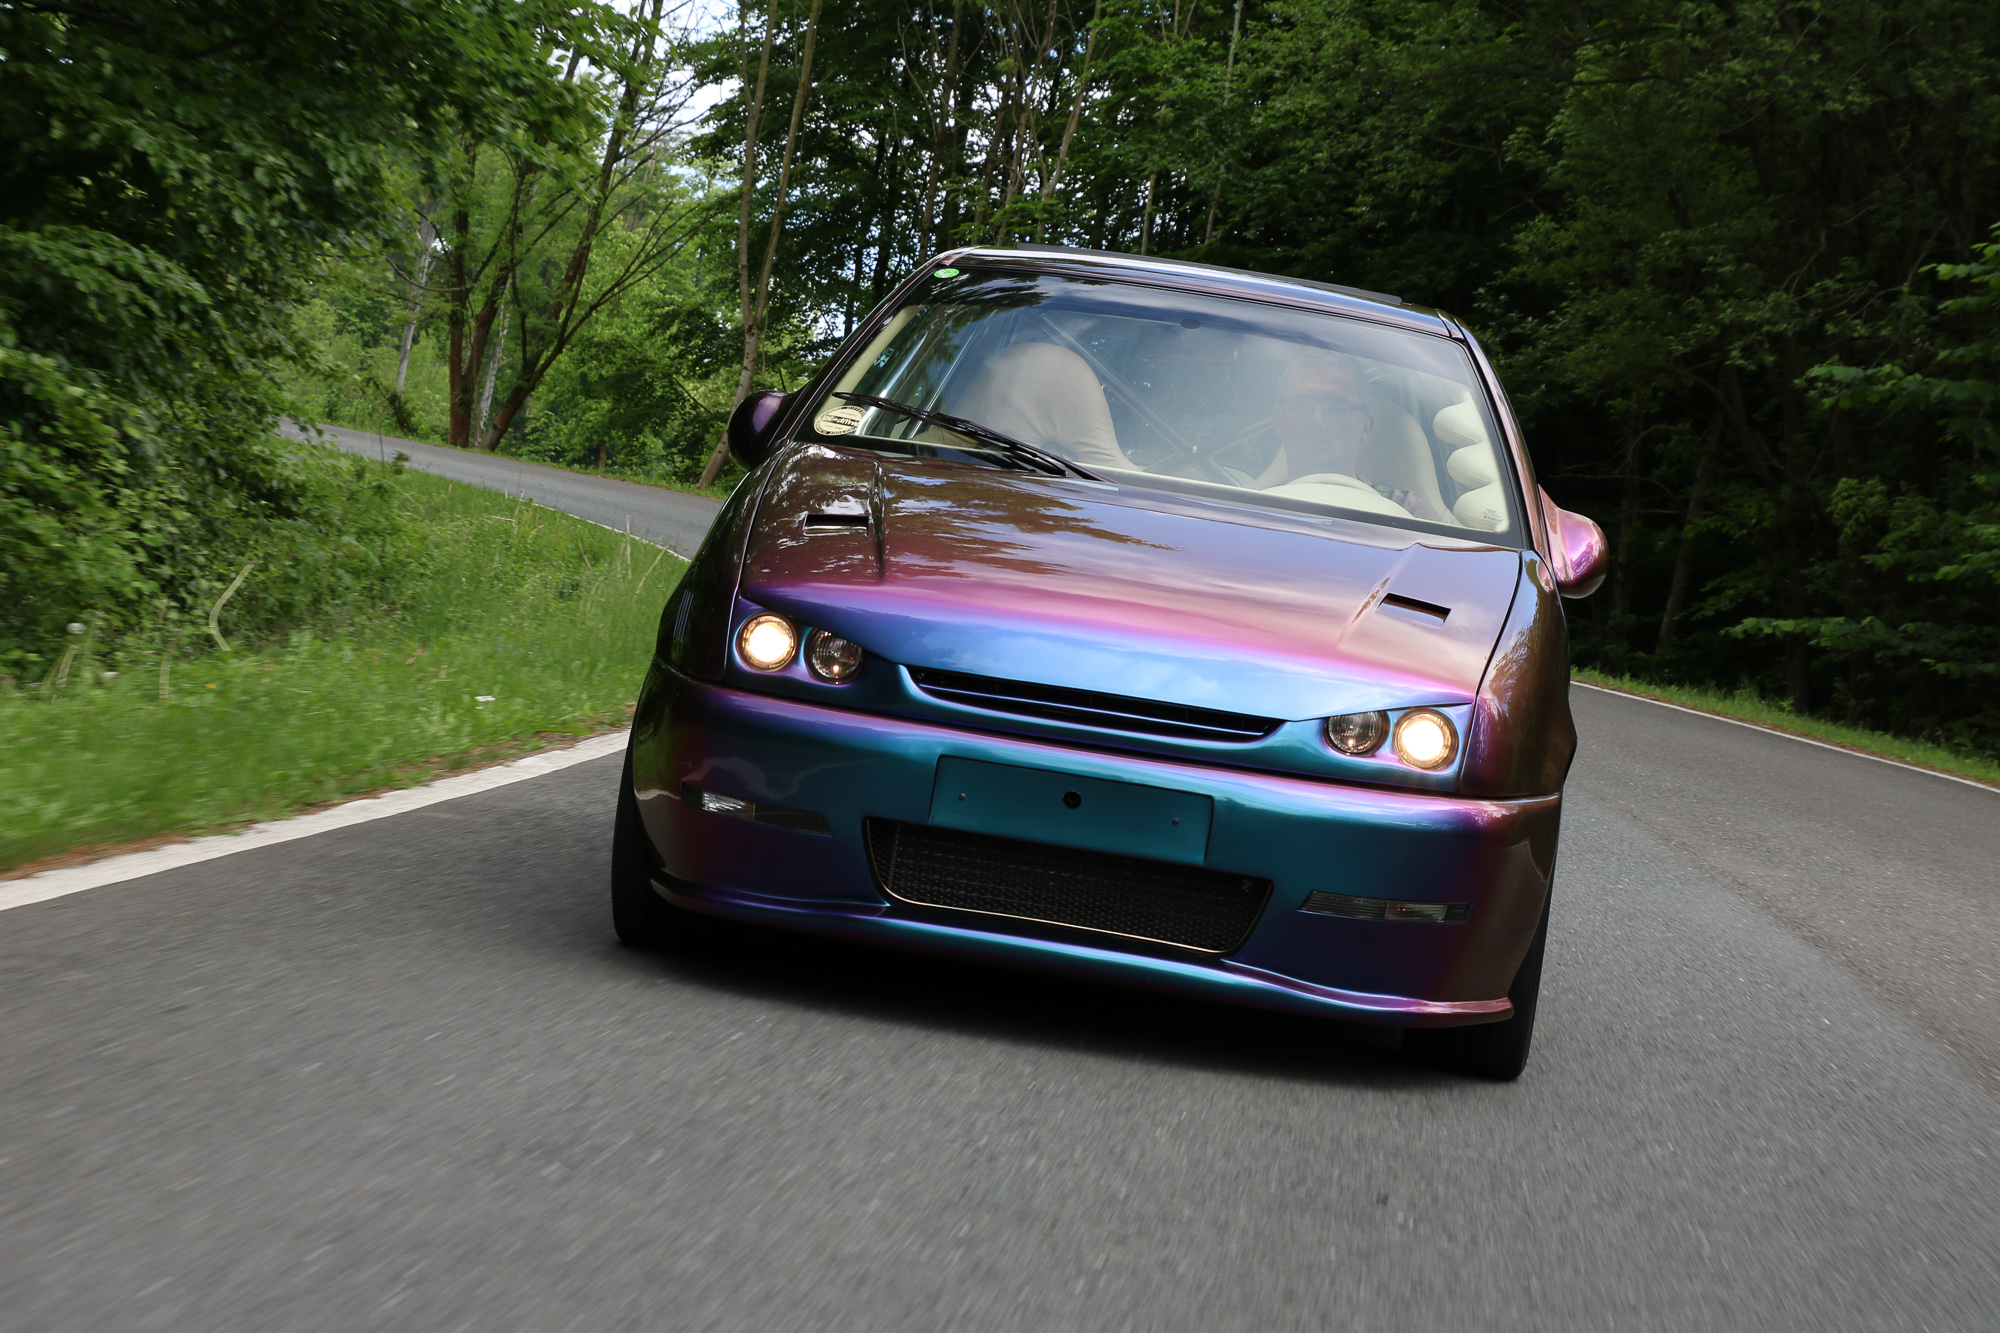 Ausfahrt.TV Tuning - Folge 10: VW Polo 6N VR6 Tuning inkl ...